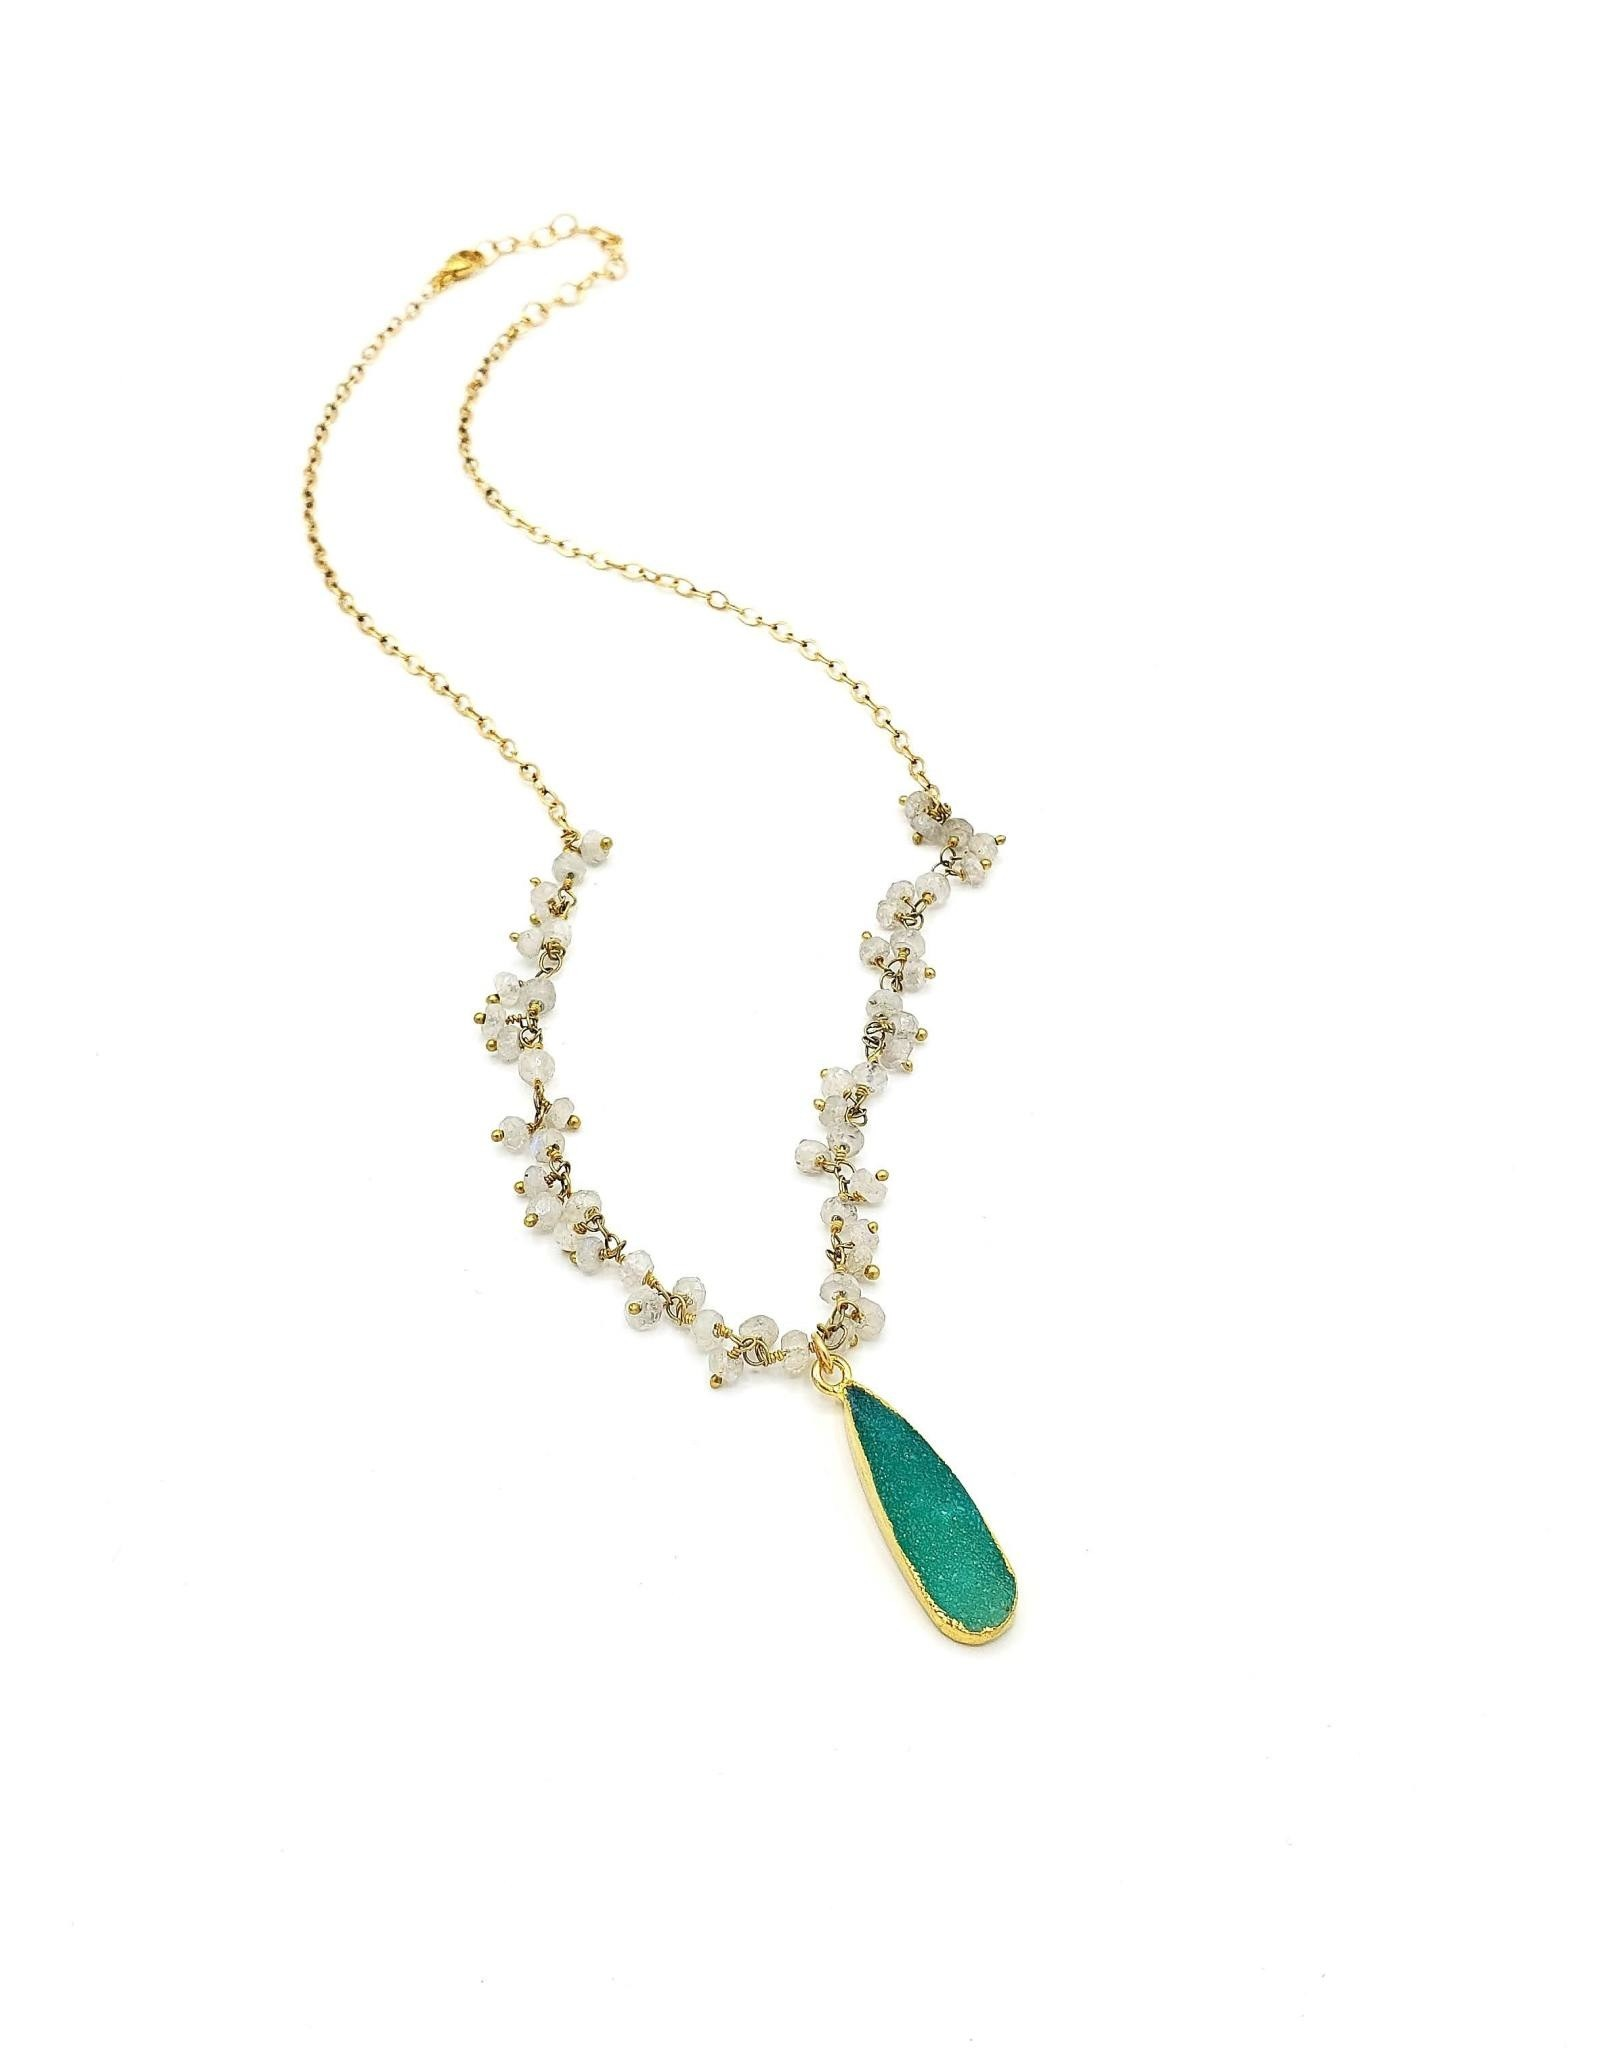 Redux Druzy Green Quartz Teardrop, Tiny Faceted Moonstone Clusters on Gold Fill Chain